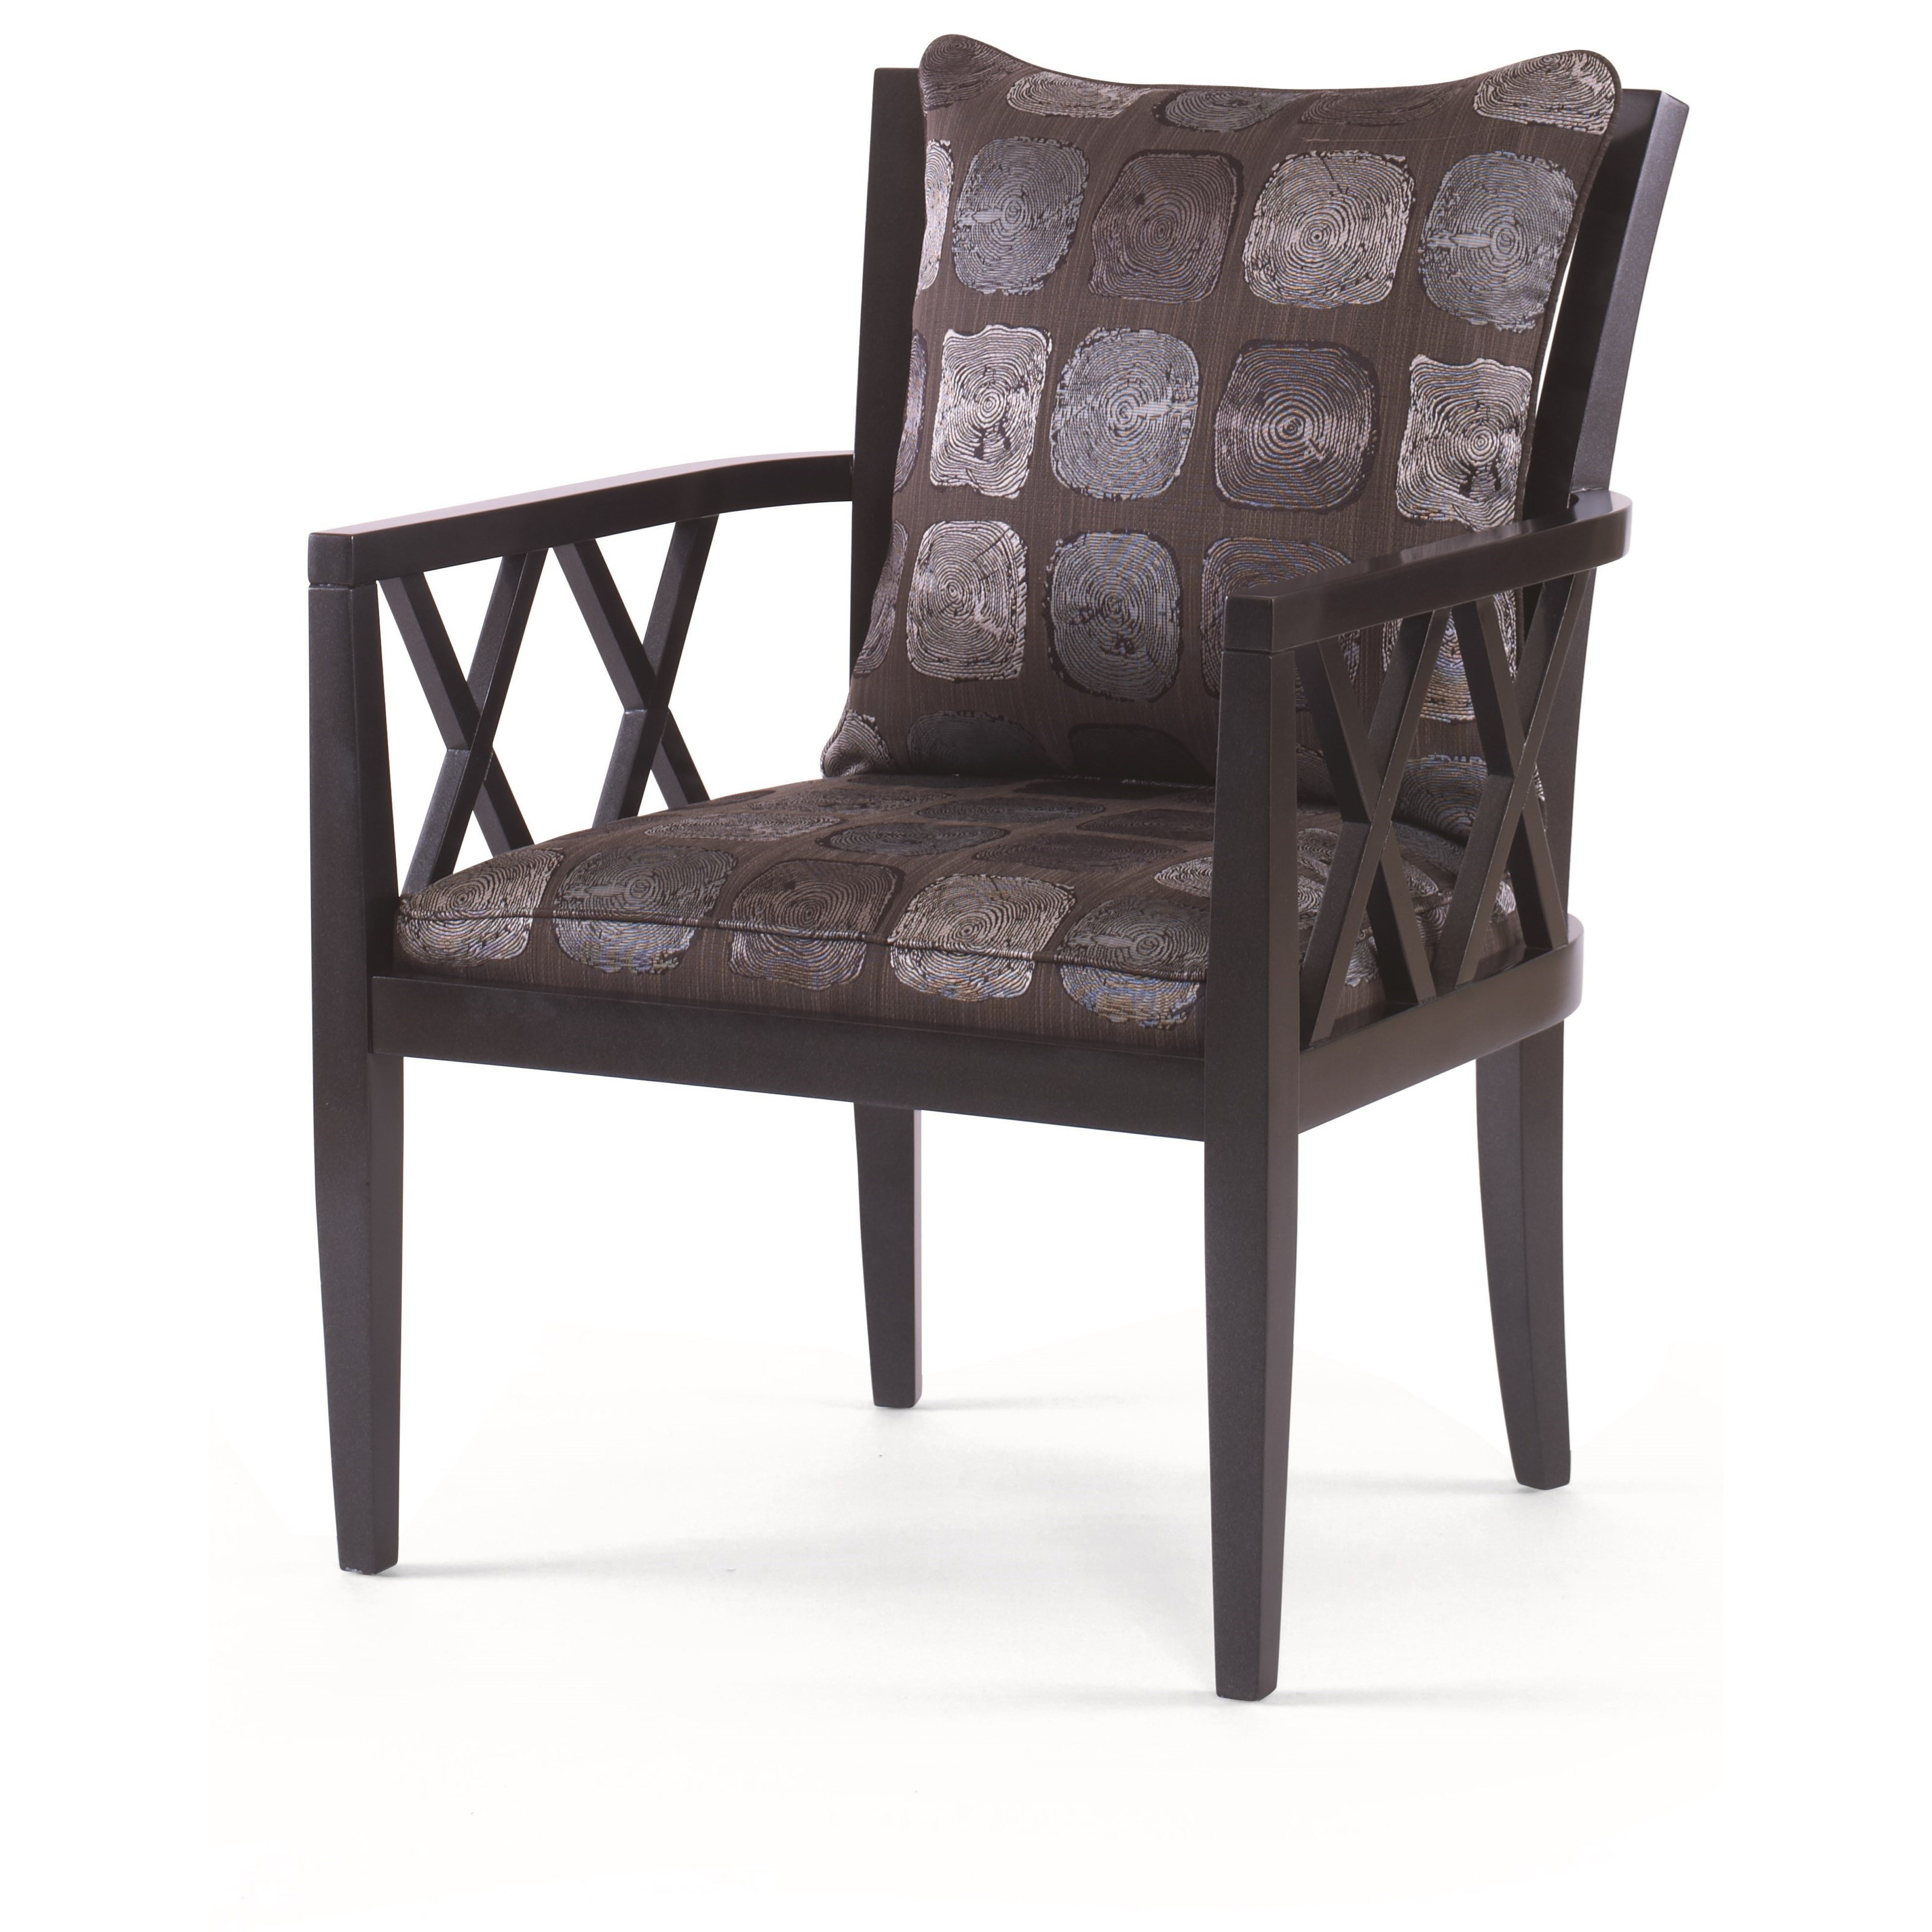 Studio Essentials Upholstery Rex Chair by Century at Baer's Furniture